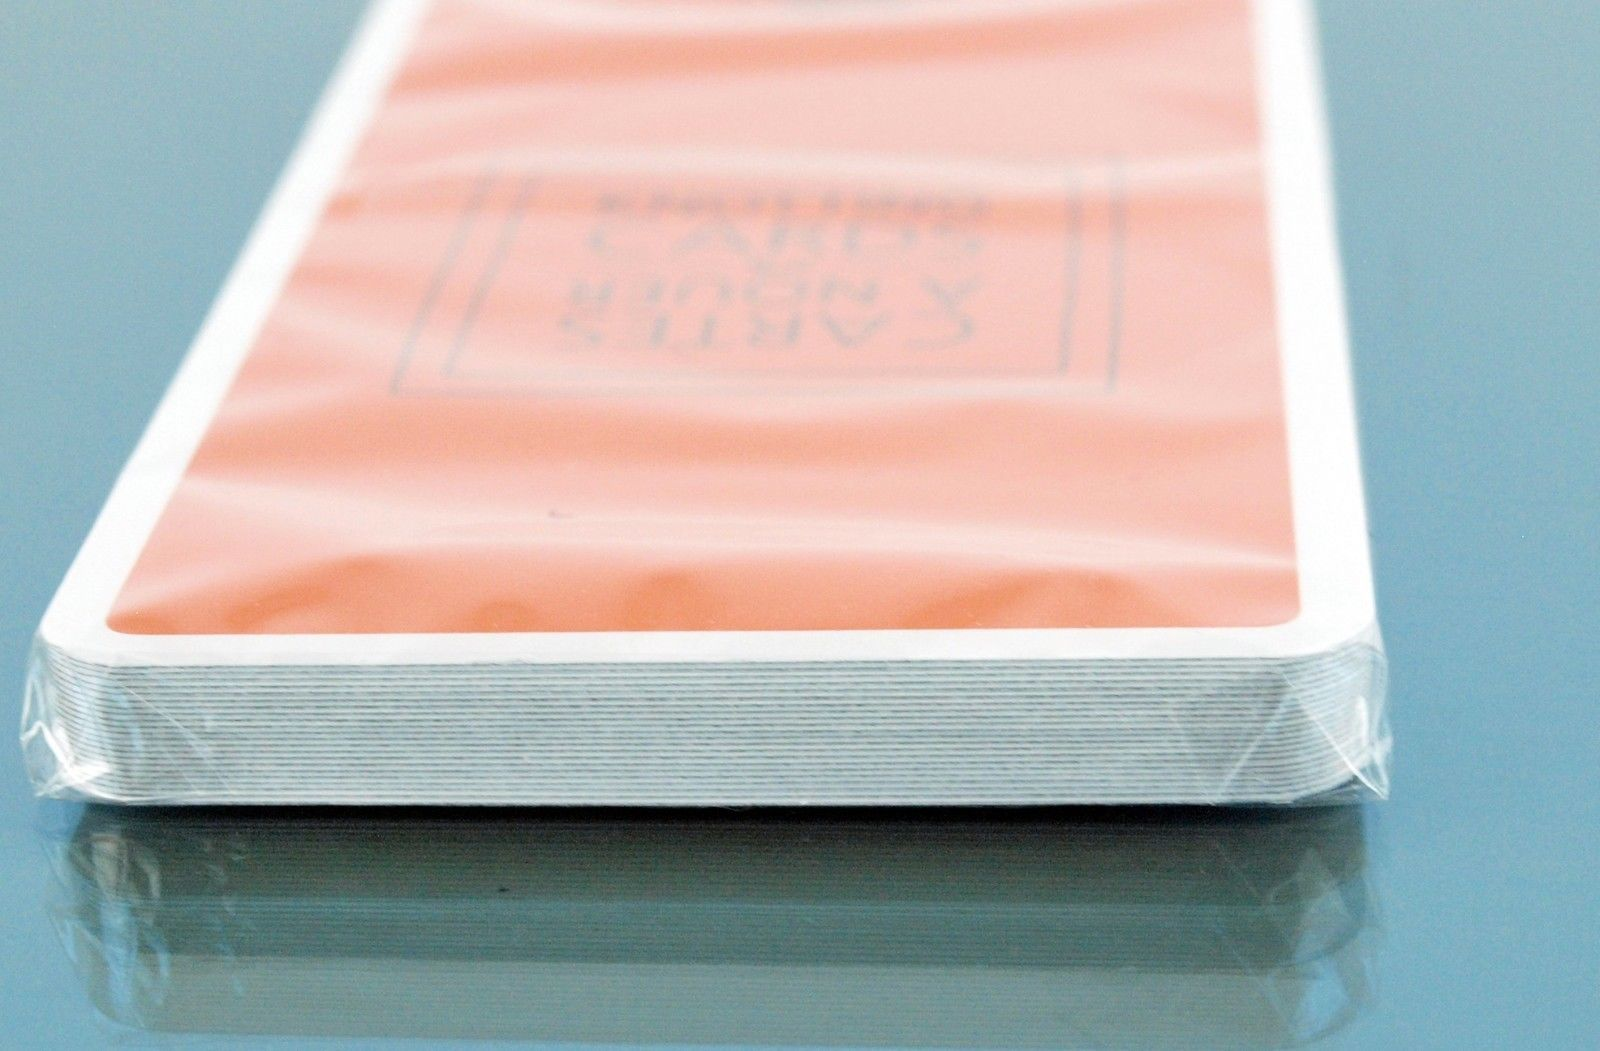 Auth Hermes Cartes a Nouer 21 Knotting Cards How to Knott Scarf / Scarves Guide